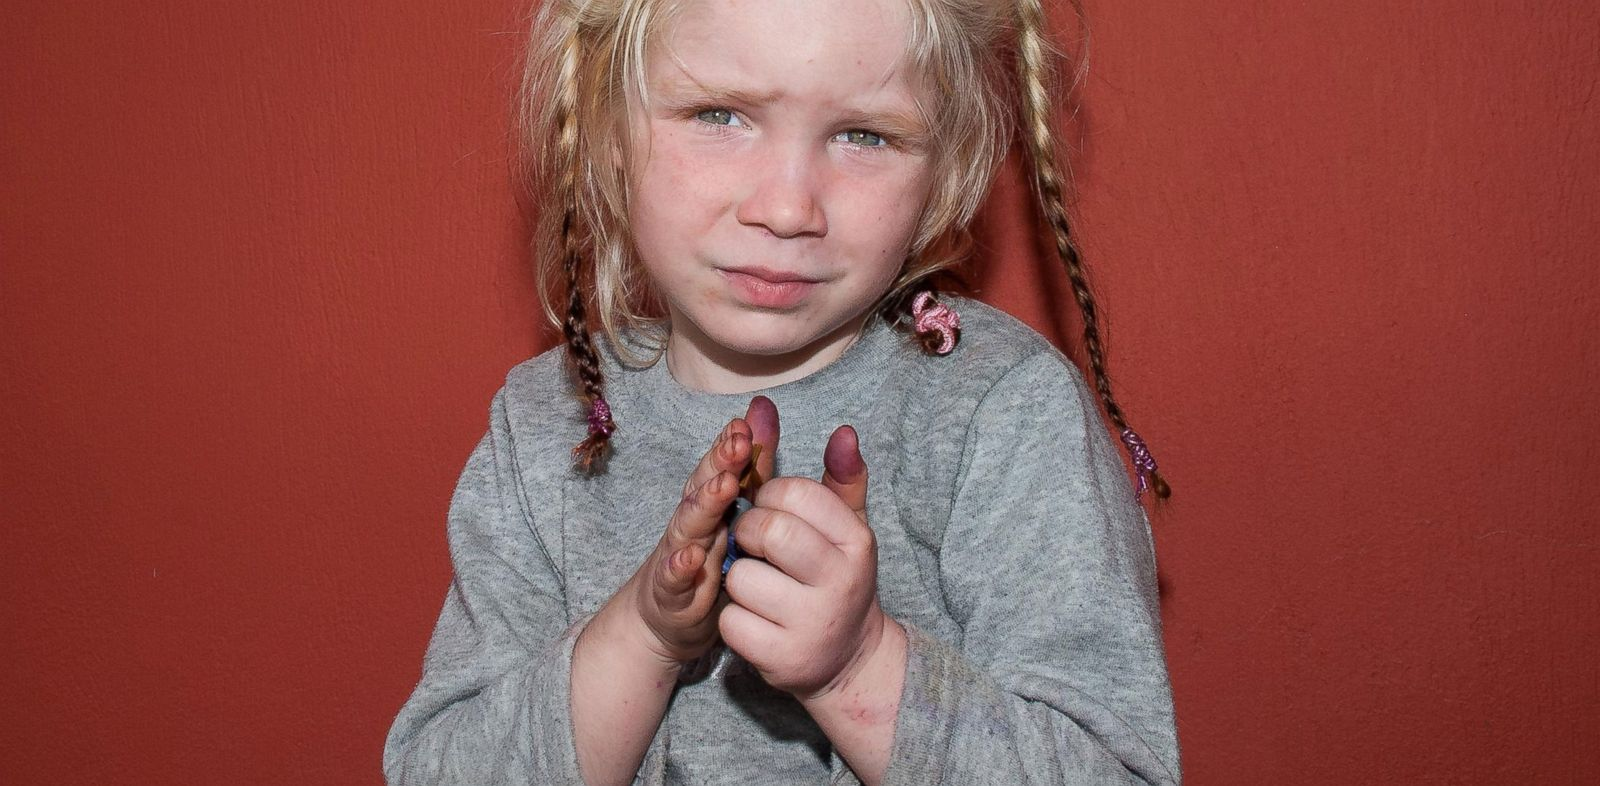 PHOTO: Greek authorities on Oct. 18, 2013 have requested international assistance to identify the girl found living in a Gypsy camp with a couple arrested and charged with abducting her from her birth parents.